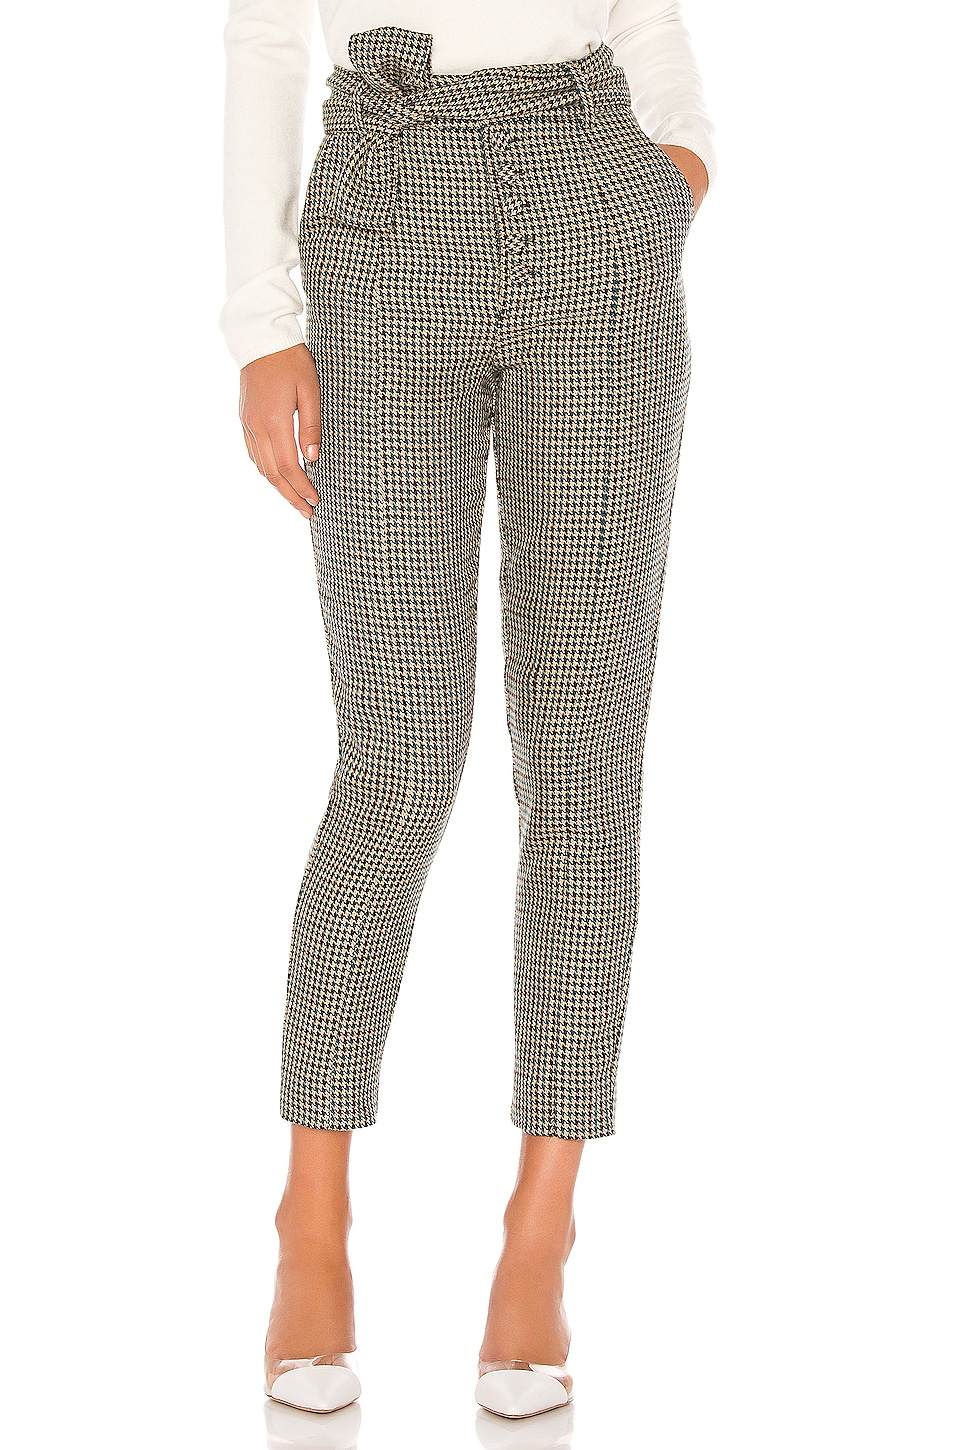 Lovers + Friends Dillion Pant in Teal & Black